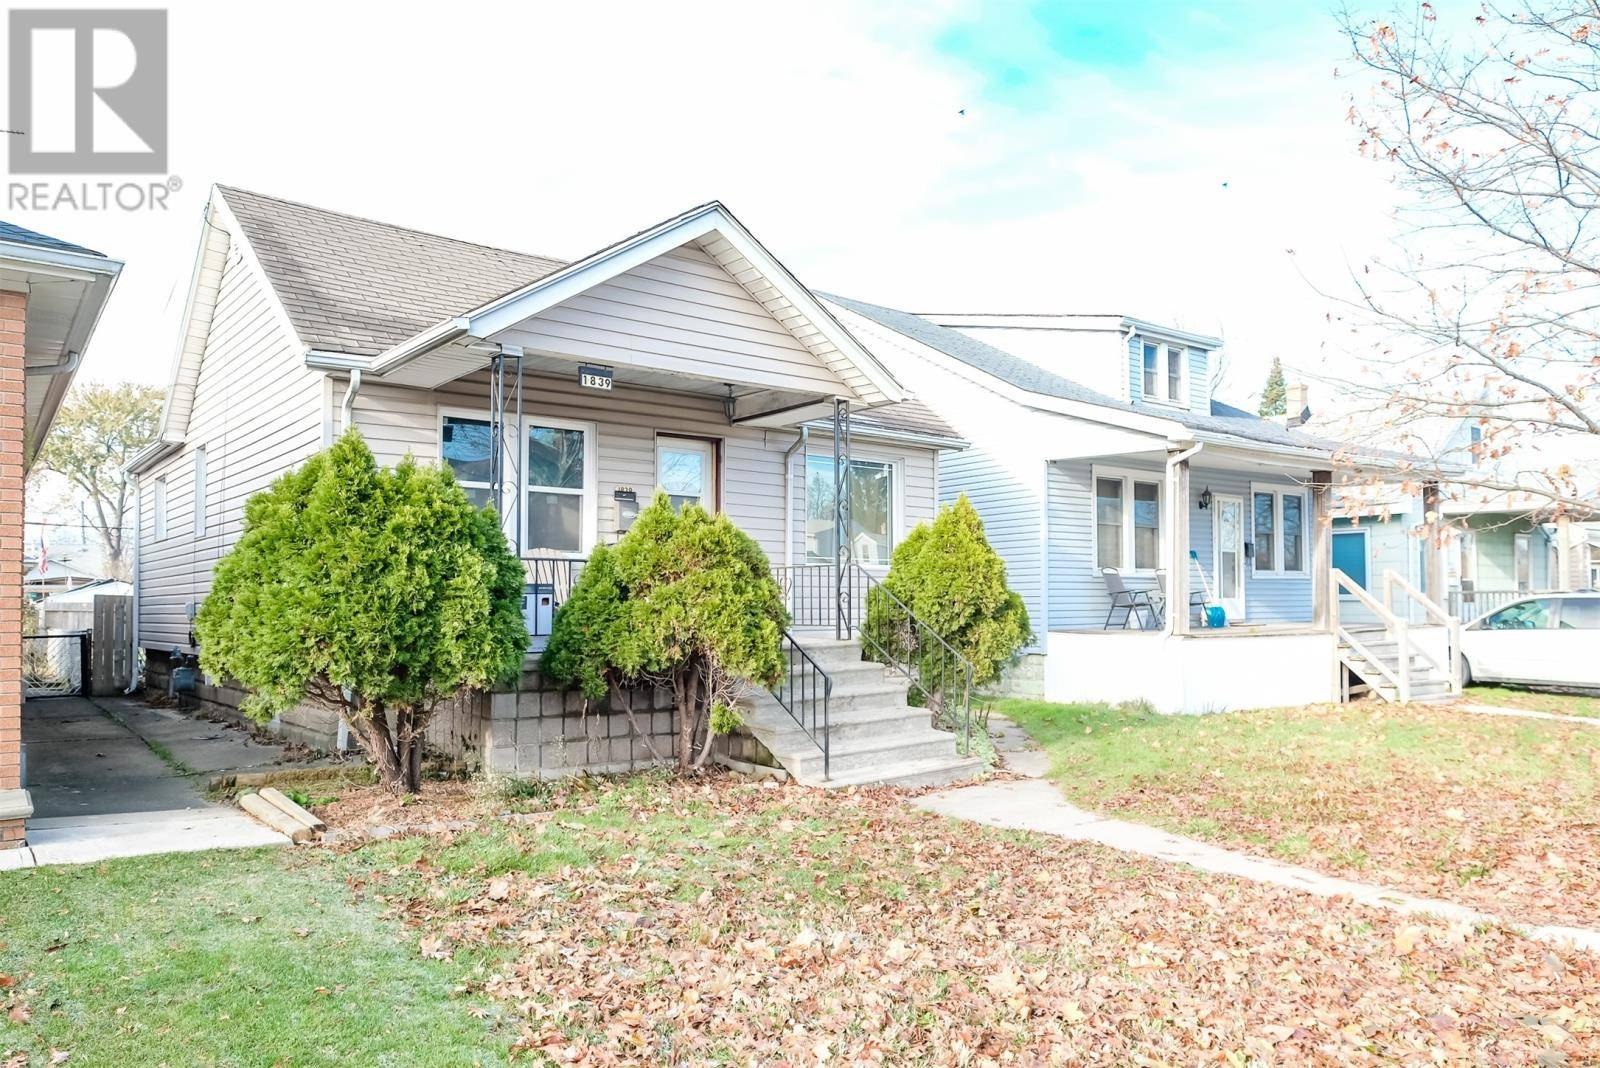 House for sale at 1839 Hall  Windsor Ontario - MLS: 19028717